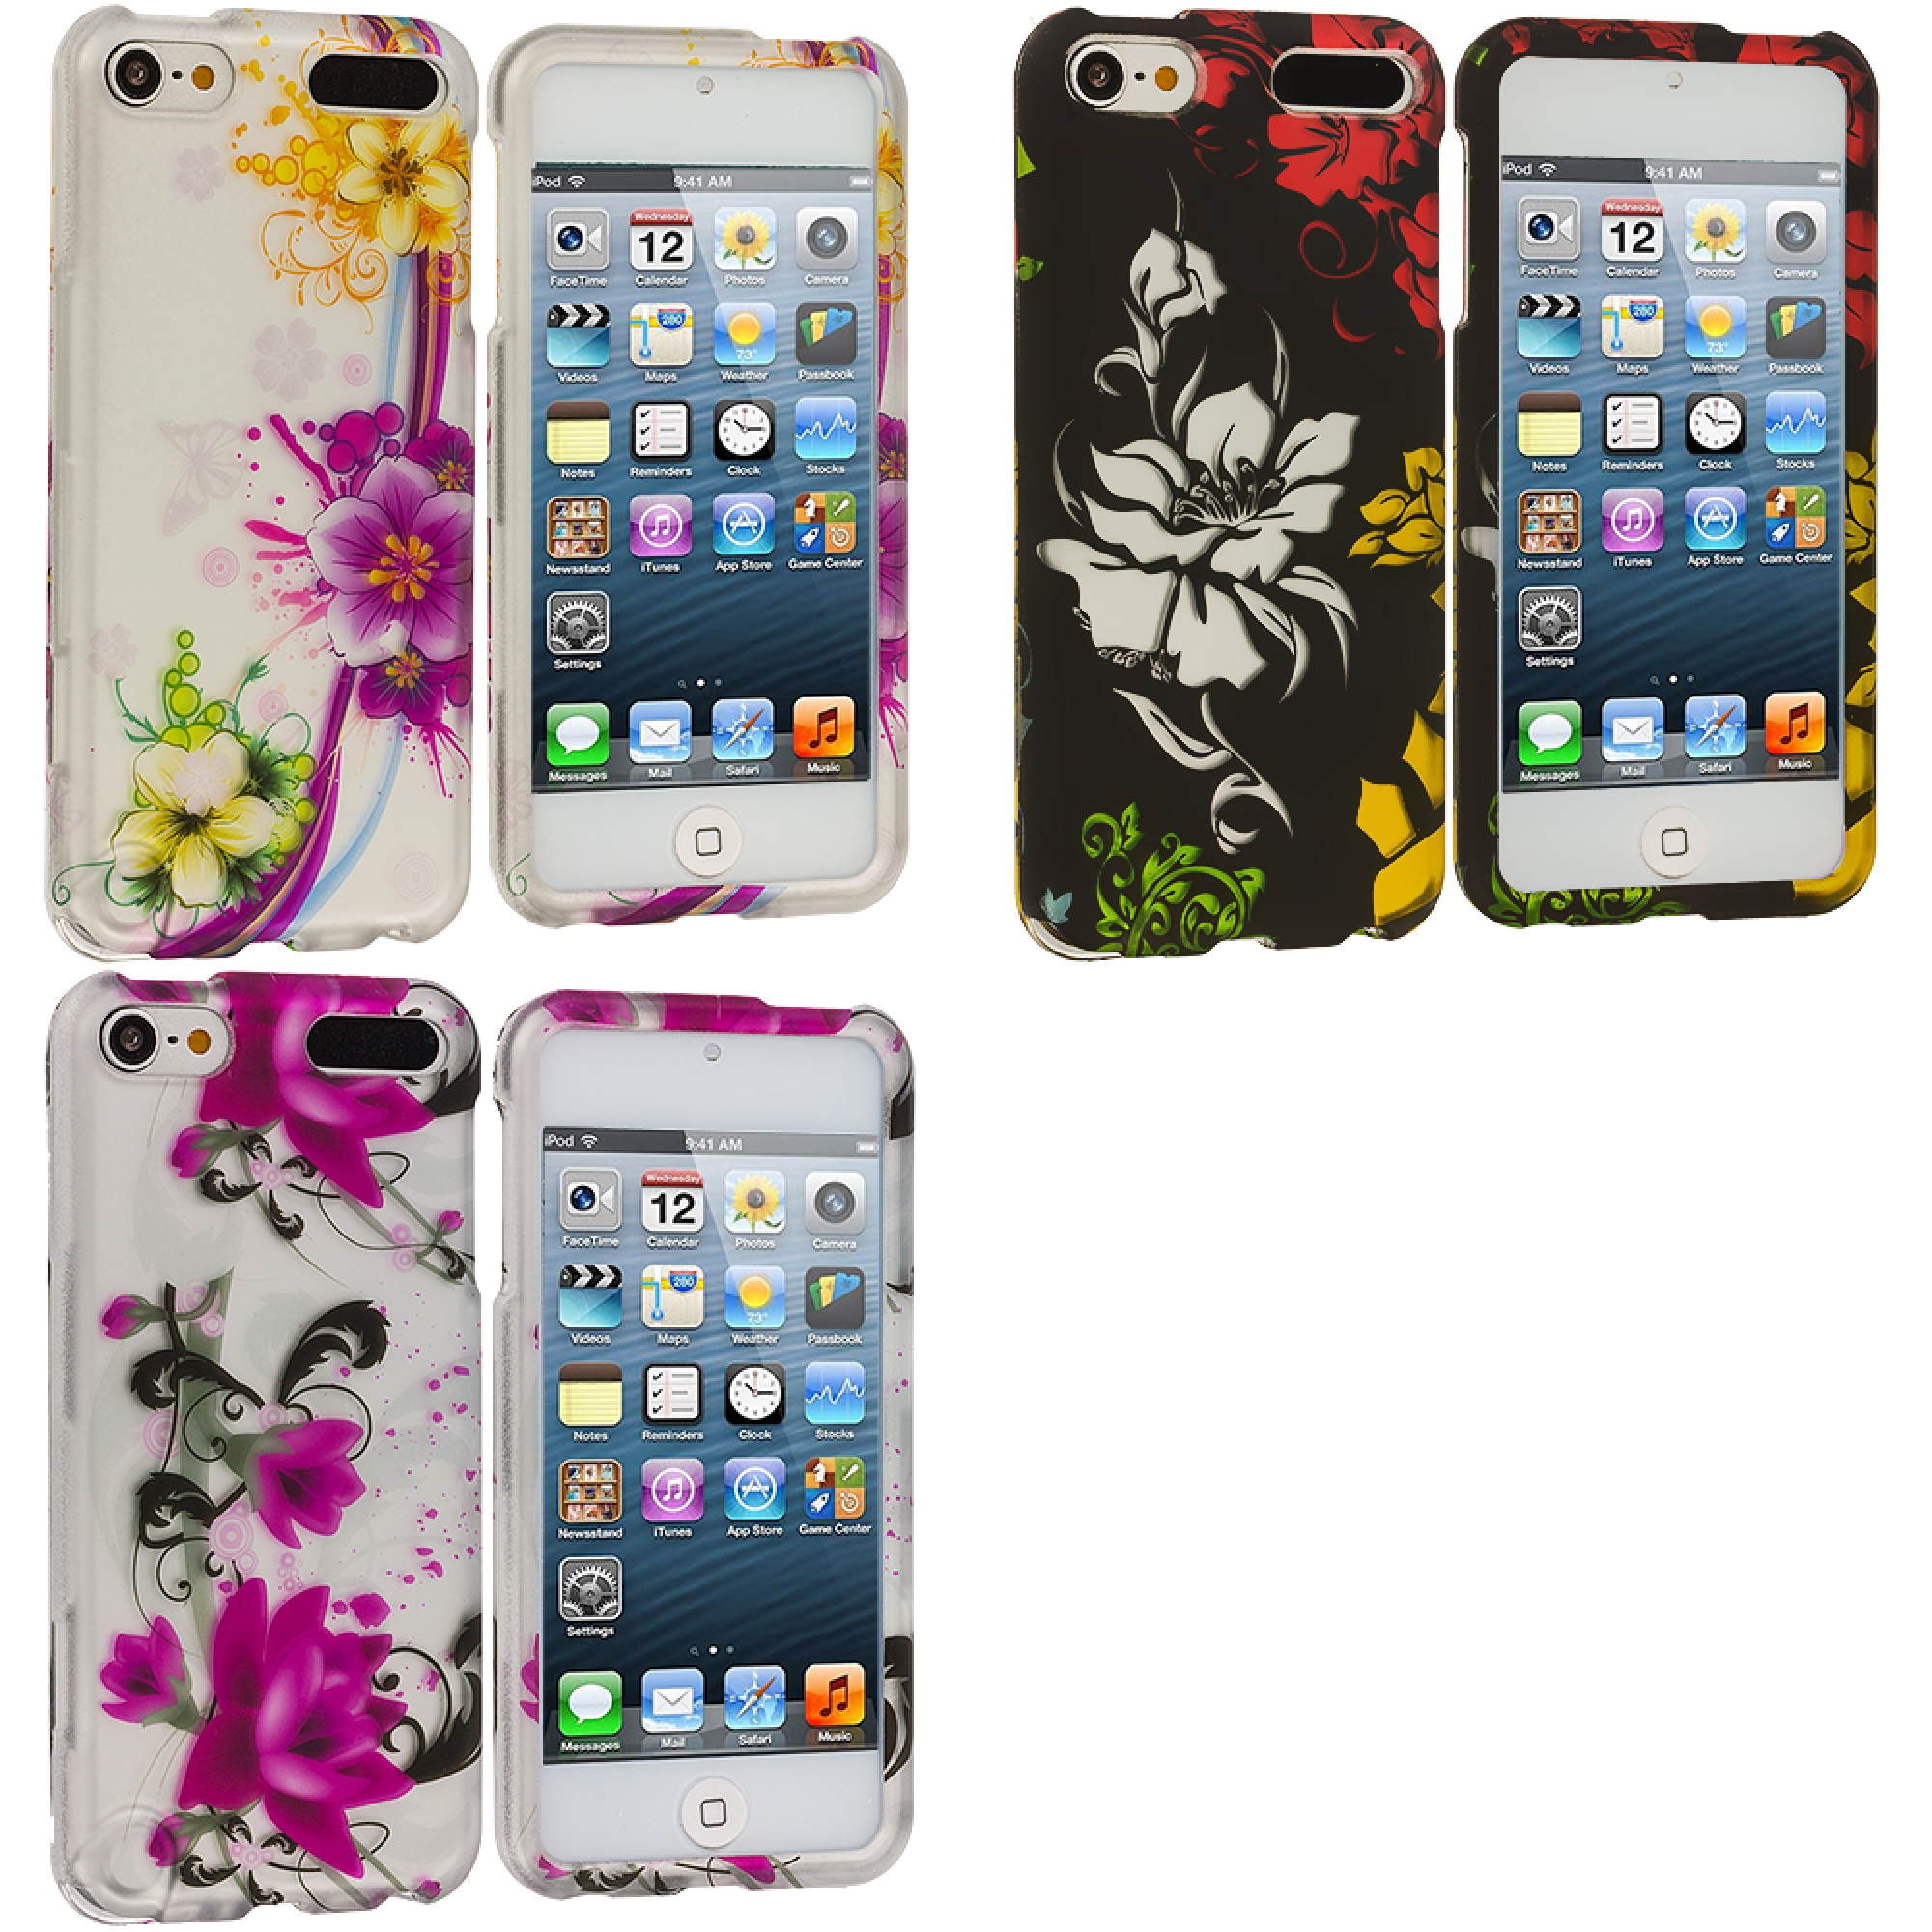 Apple iPod Touch 5th 6th Generation 3 in 1 Combo Bundle Pack - Flower Chain Hard Rubberized Design Case Cover